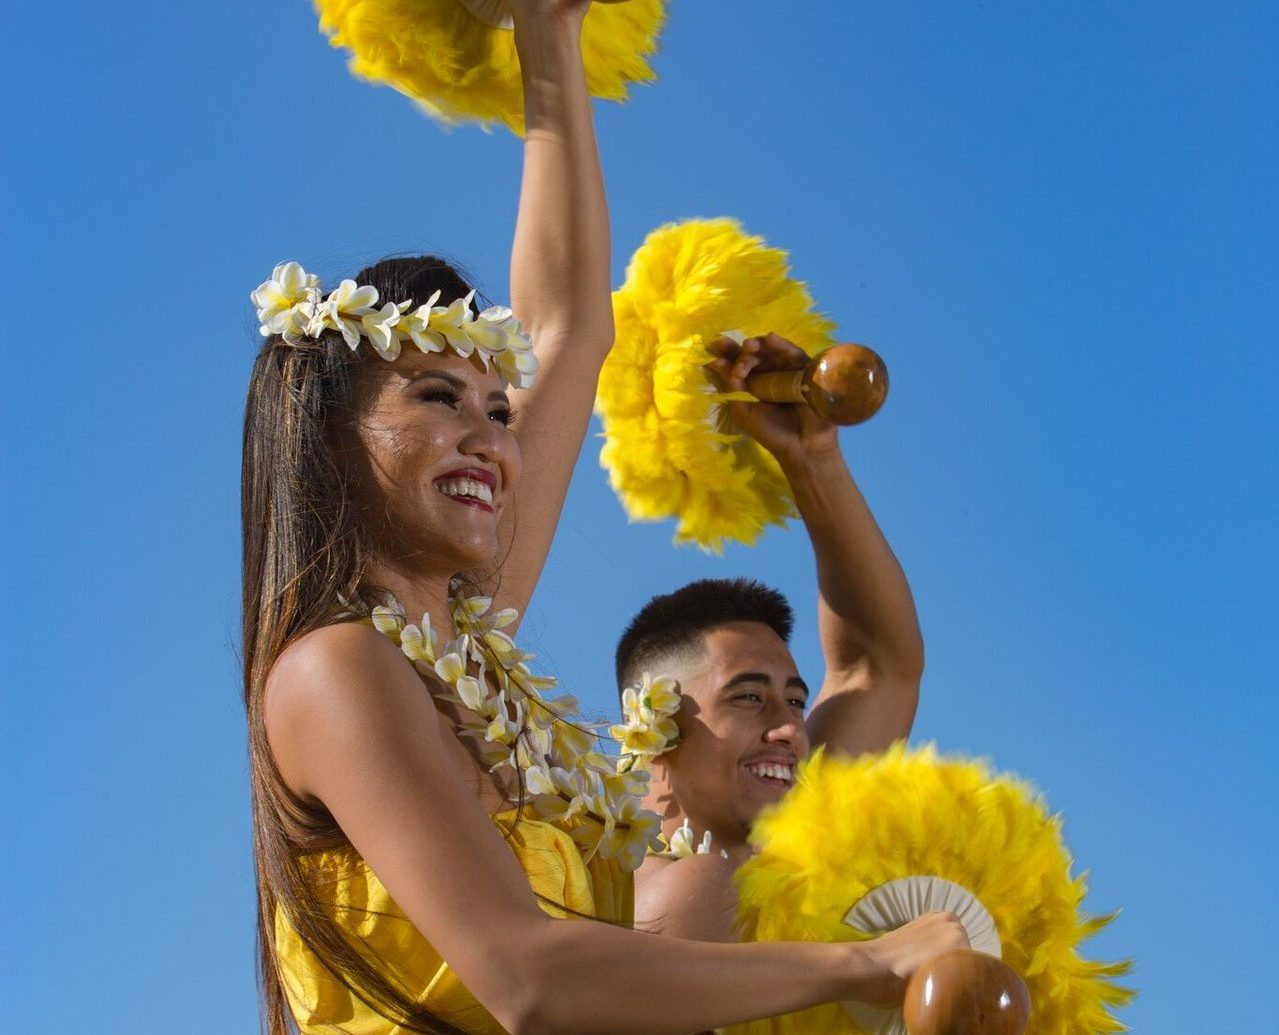 Jetsetter Guides sky person outdoor yellow dance performing arts sports team sport Entertainment dancer event hula flower festival